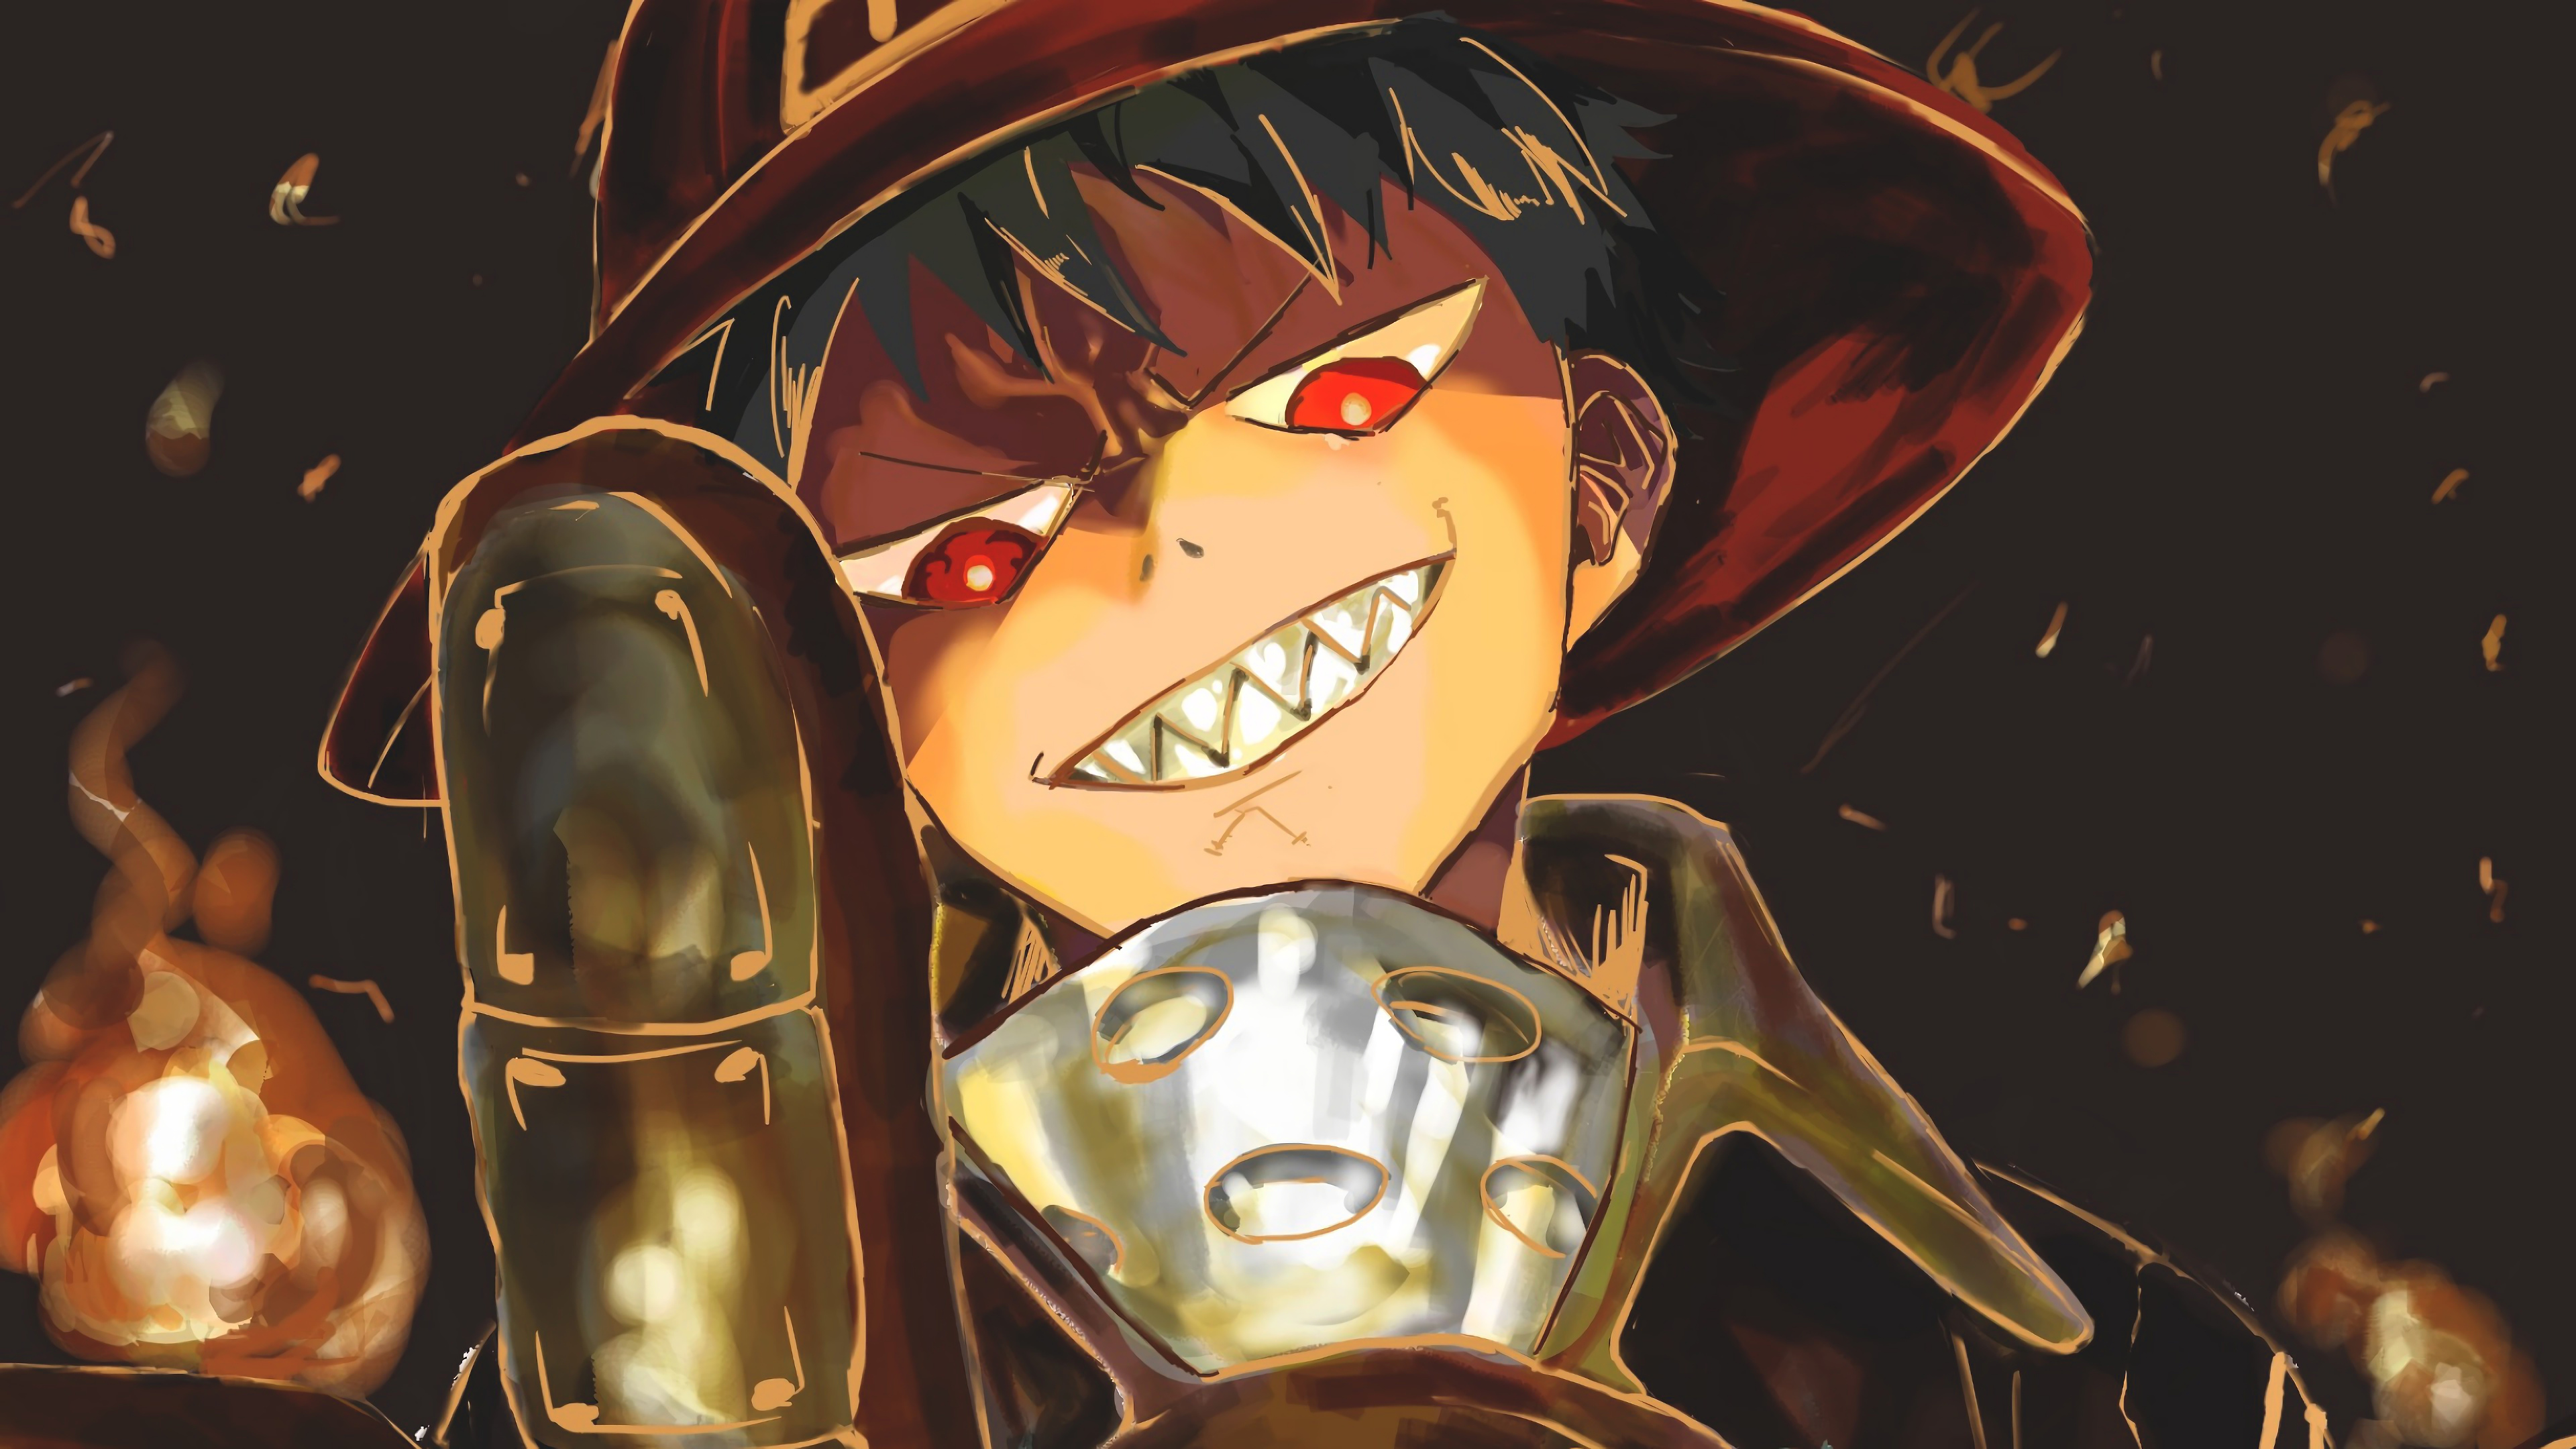 Fire Force Shinra Kusakabe Smile 4K Wallpapers